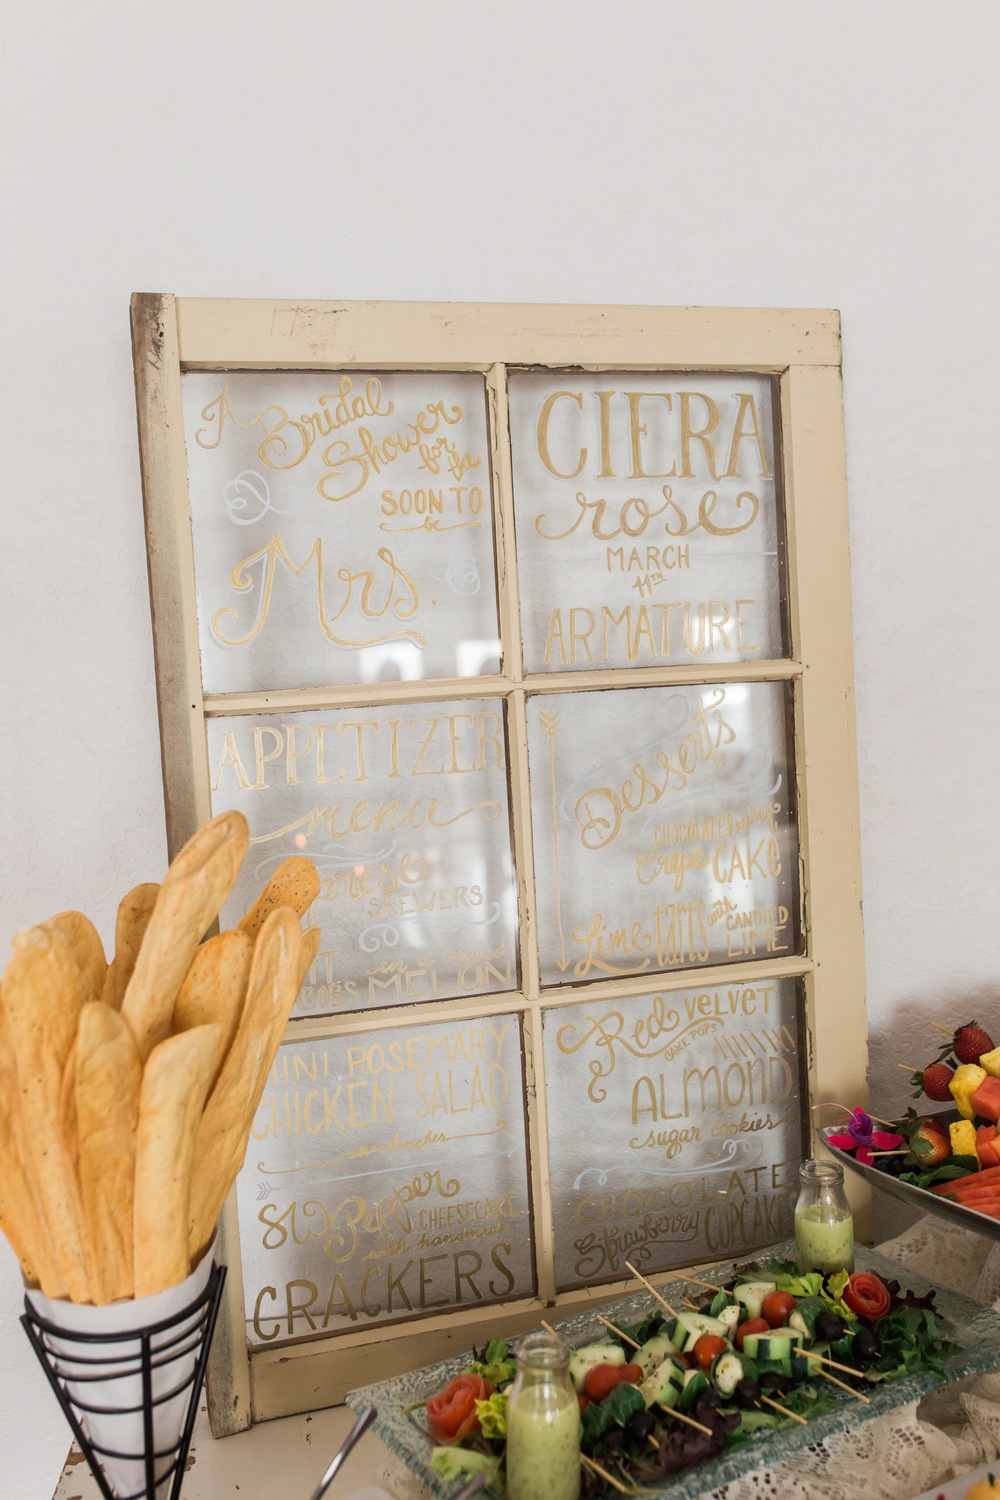 Chalked Creative made this gorgeous window pane detailing all of the menu that the ladies got to enjoy.  And just look at Tate & Tate's famous breadsticks.  Mmm-mmm.